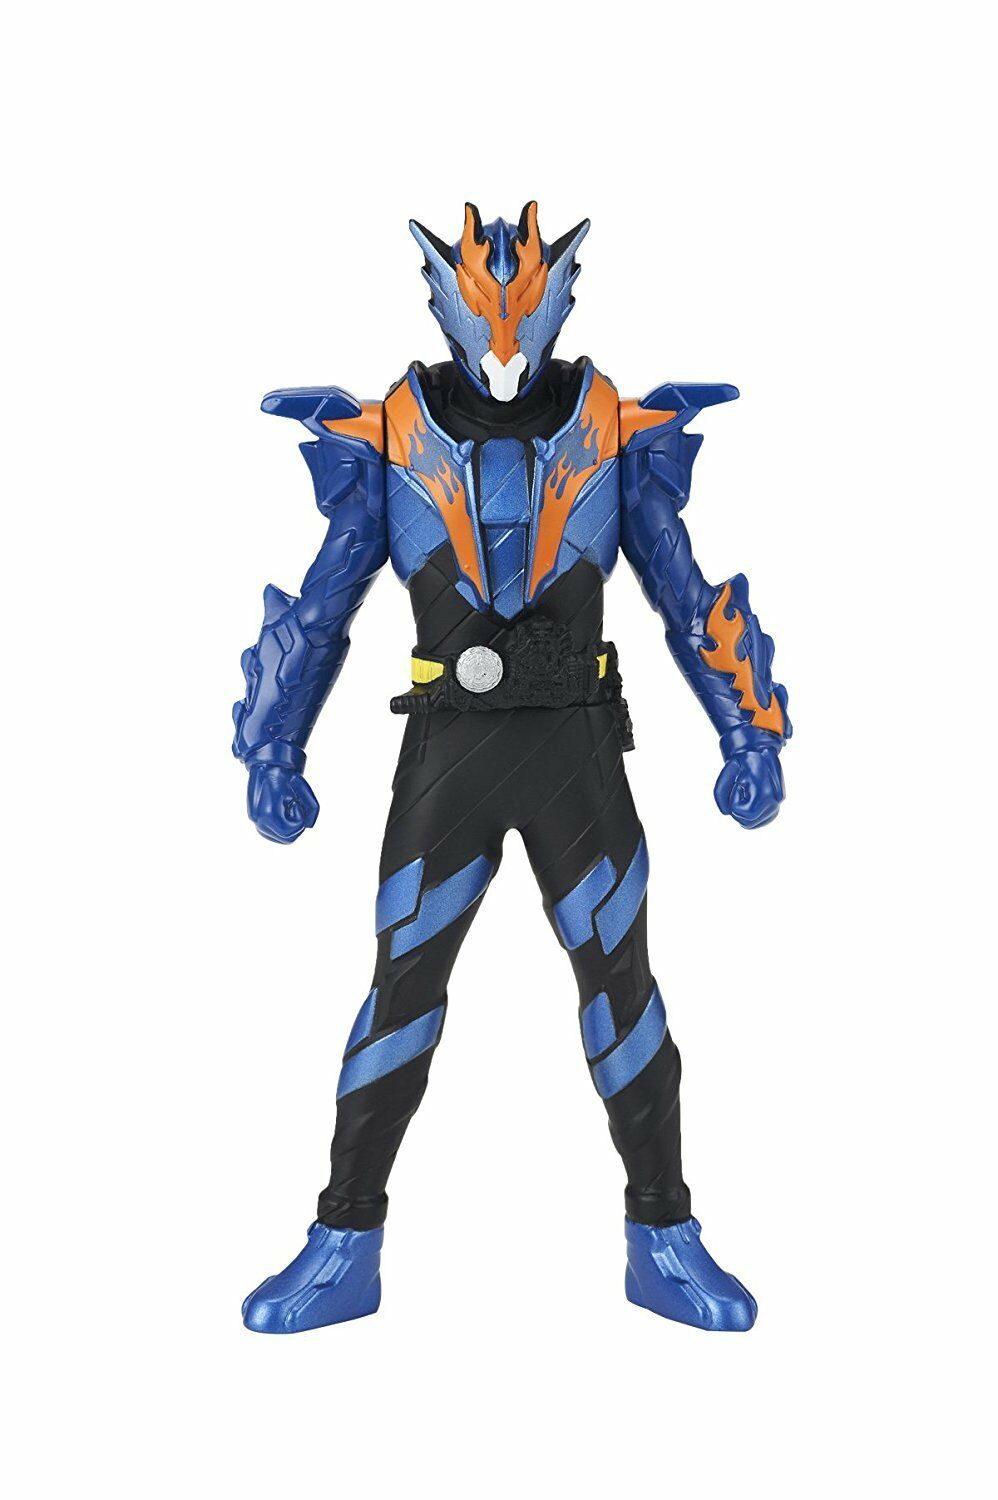 NEW Bandai Kamen Rider Build Rider Hero Series 10 & & & 11 & 12 Action Figure Set 1395dd